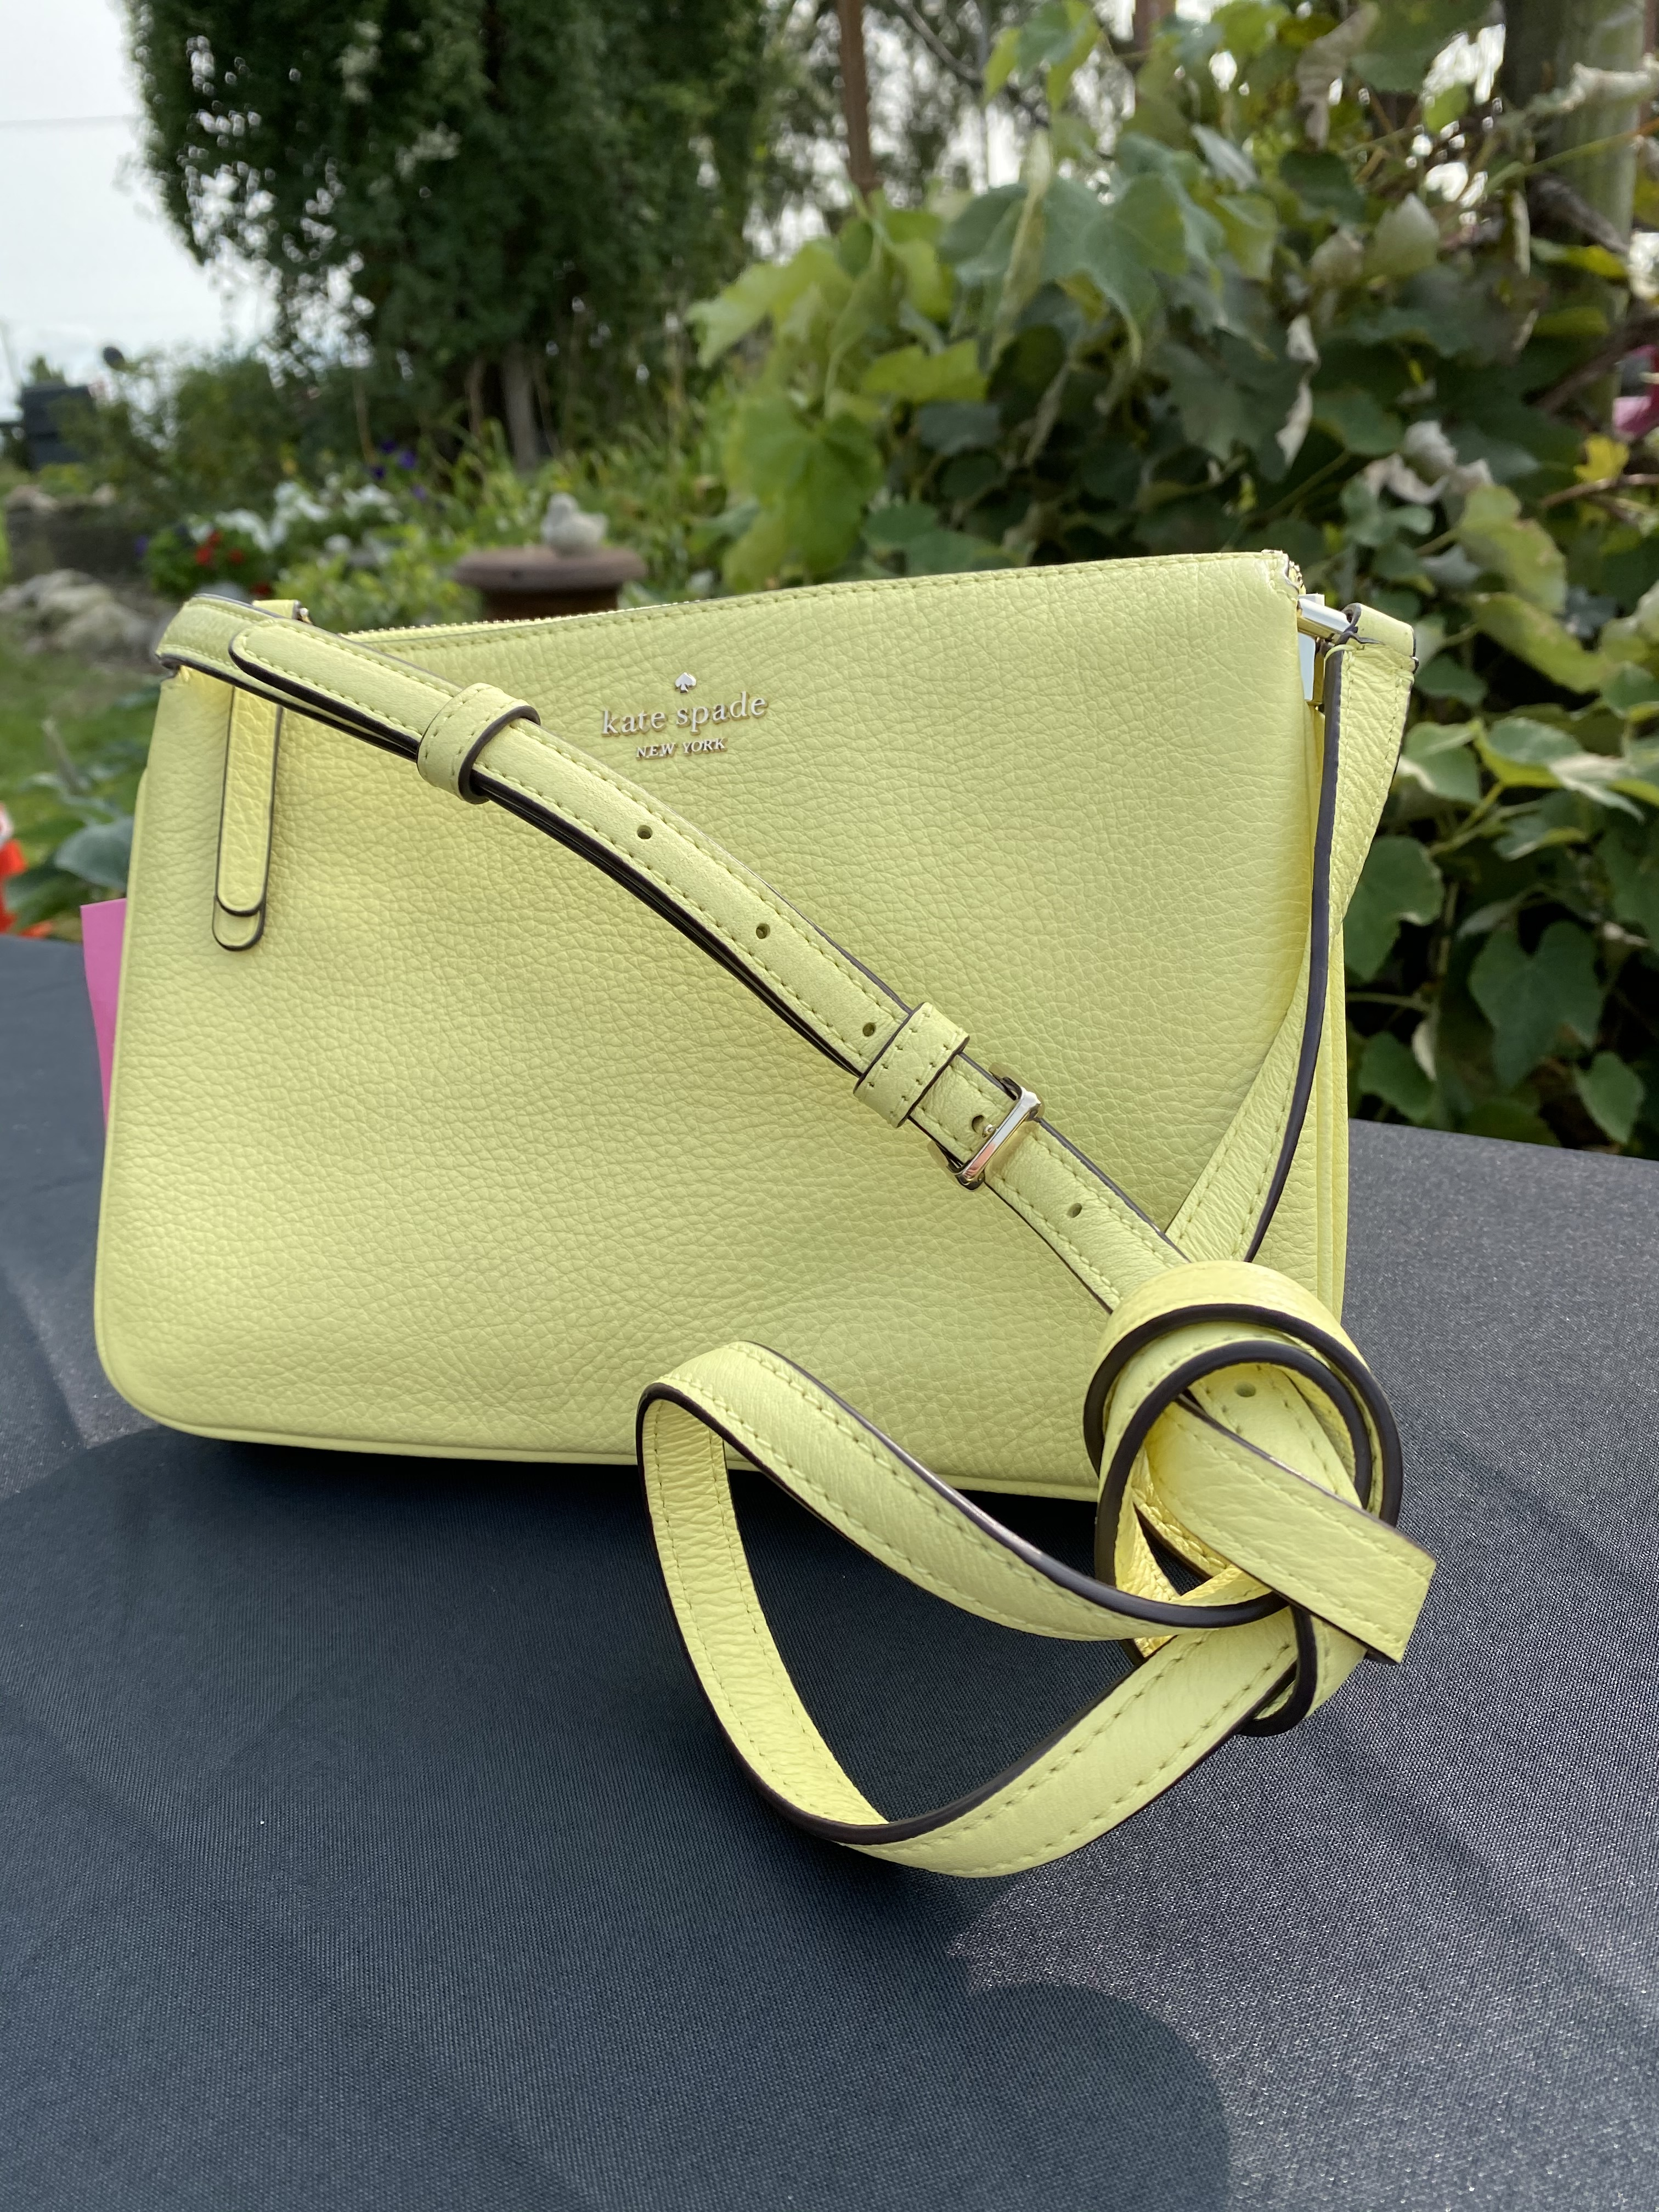 #1 Lemon-Yellow Kate Spade